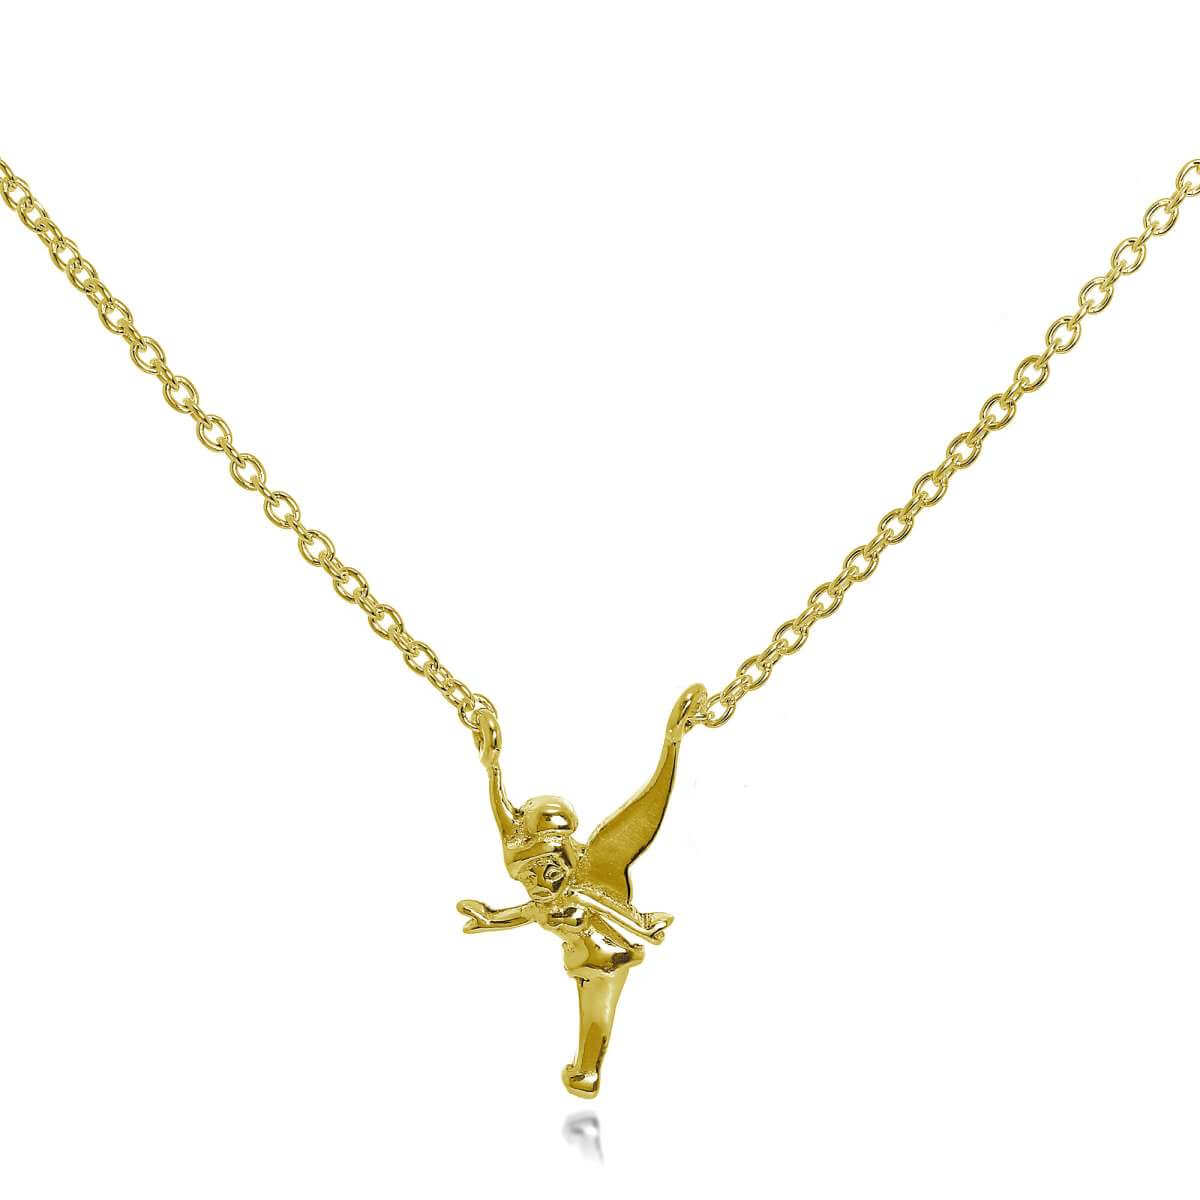 Gold Plated Sterling Silver Fairy Necklace 18 Inches